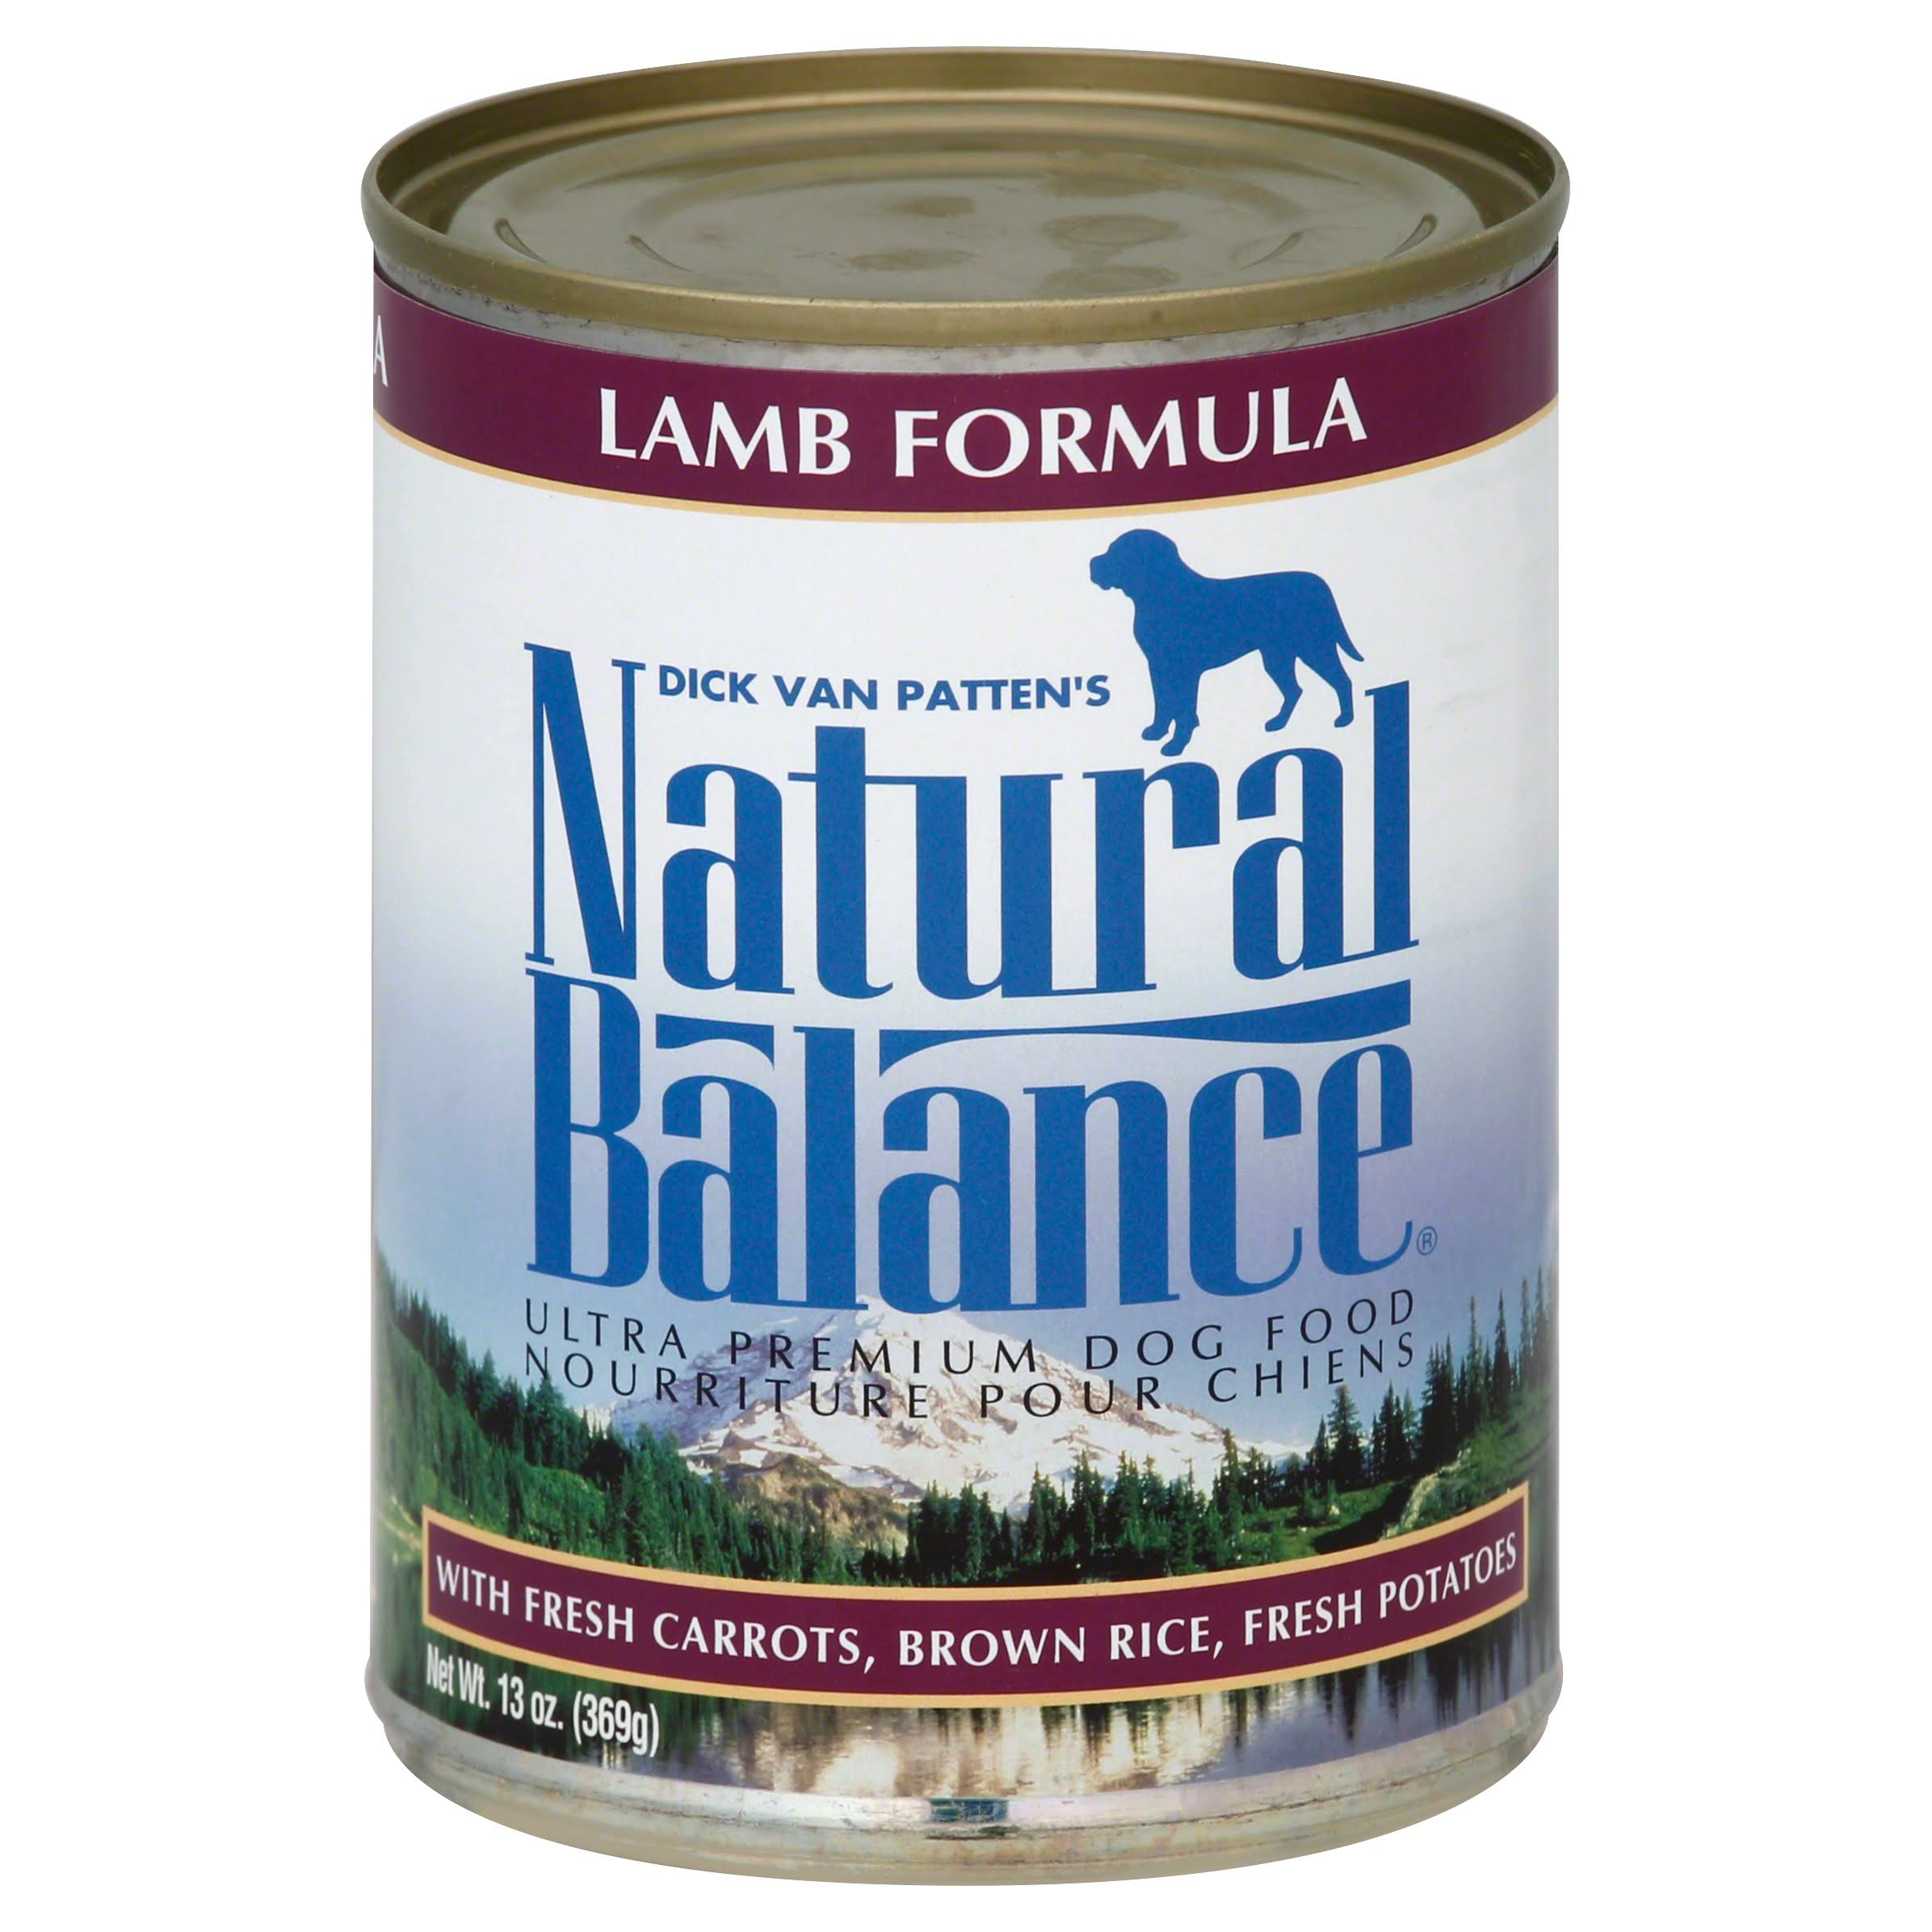 Natural Balance Premium Dog Food - Lamb Formula, 369g